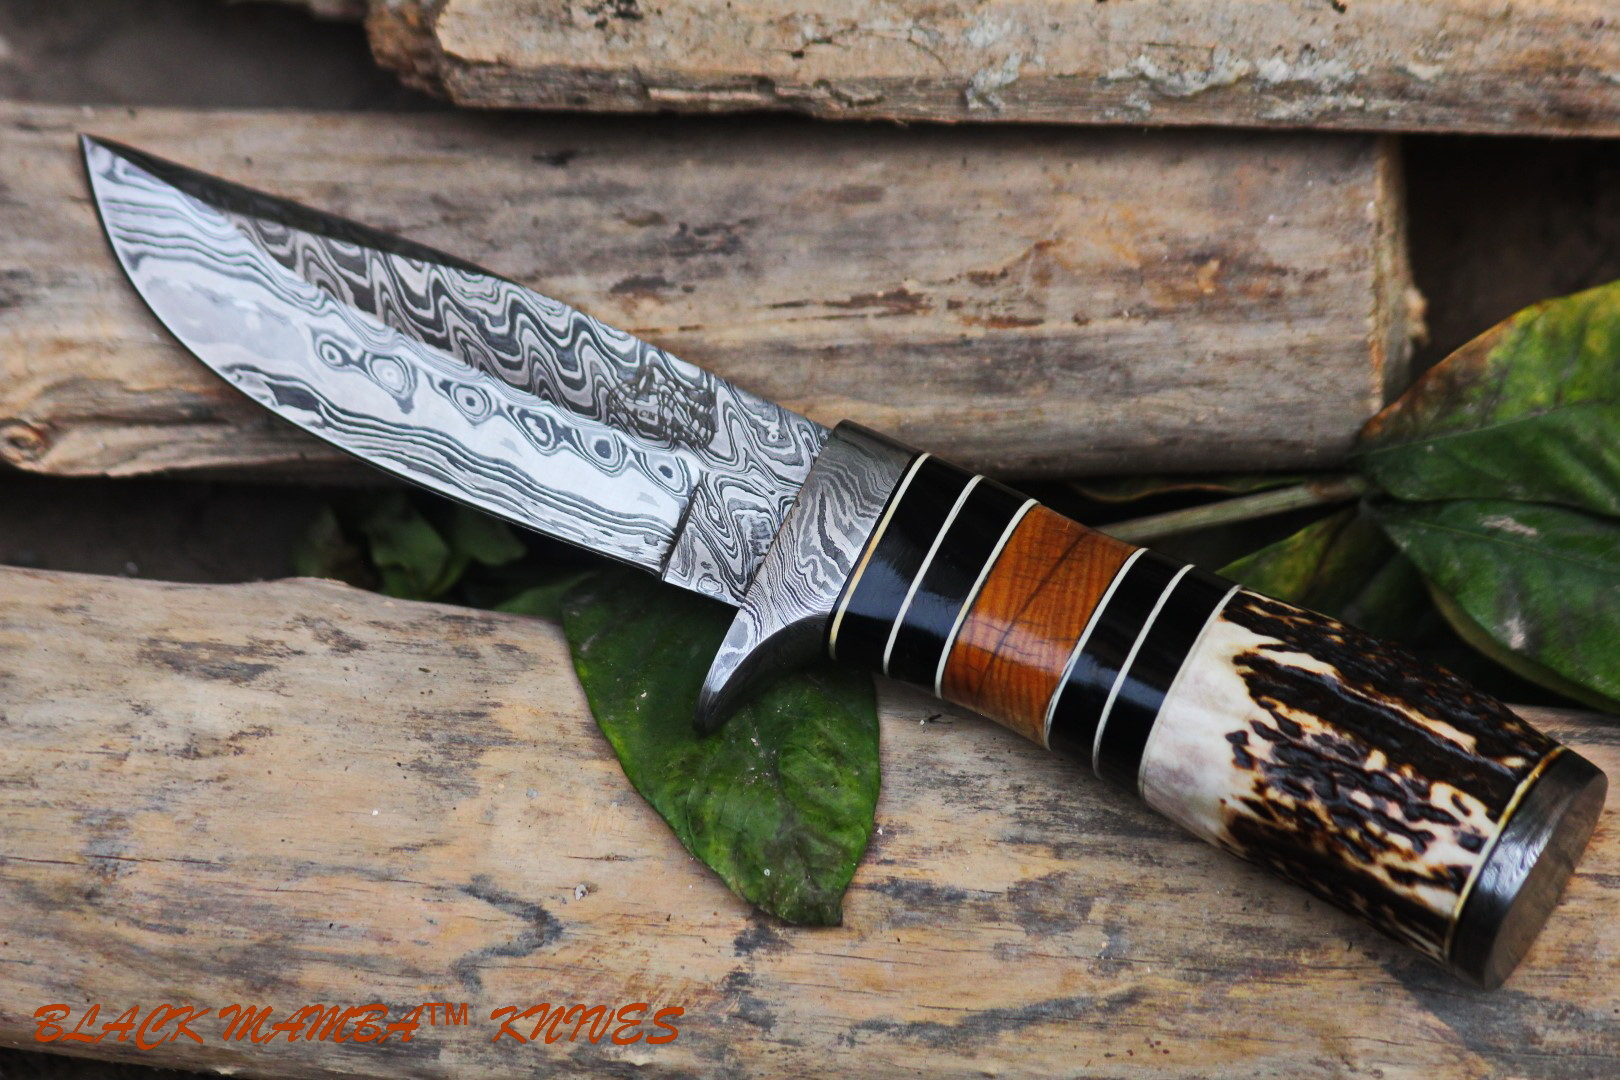 BMK-103 Bobcat damascus knives handmade knives by black mamba usa